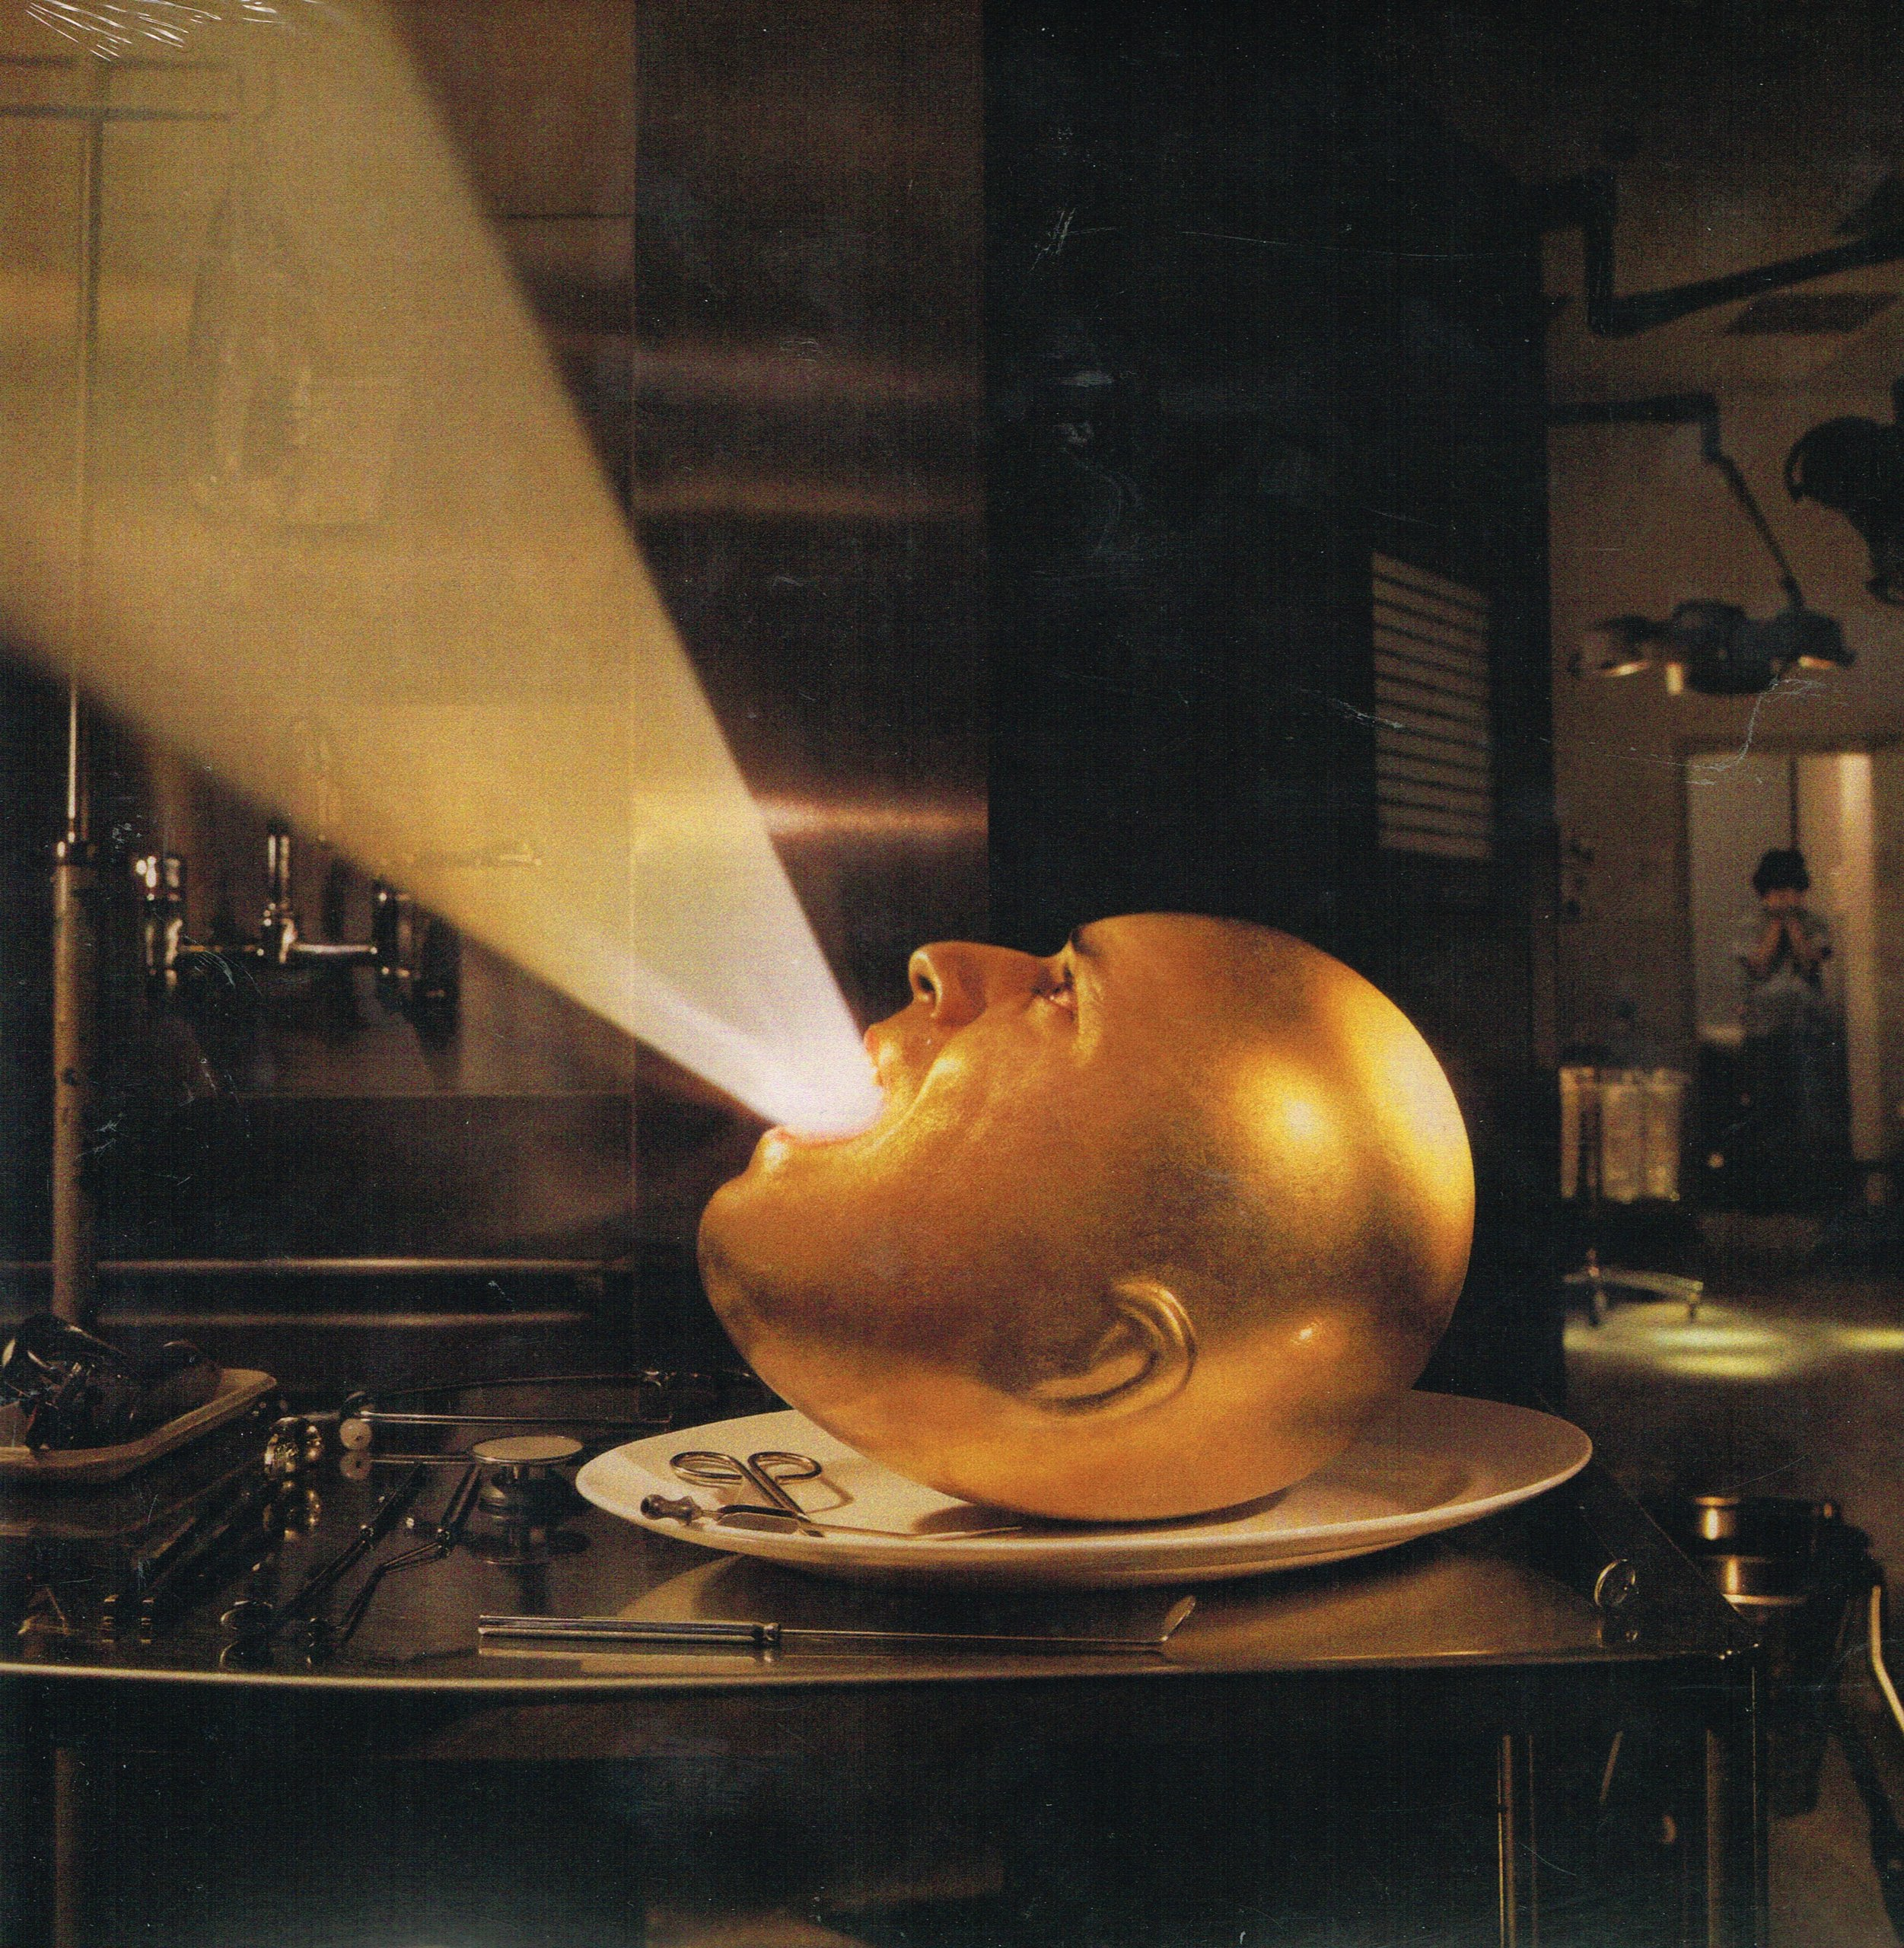 De-Loused in the Comatorium [Vinyl] by Gold Standard Labs